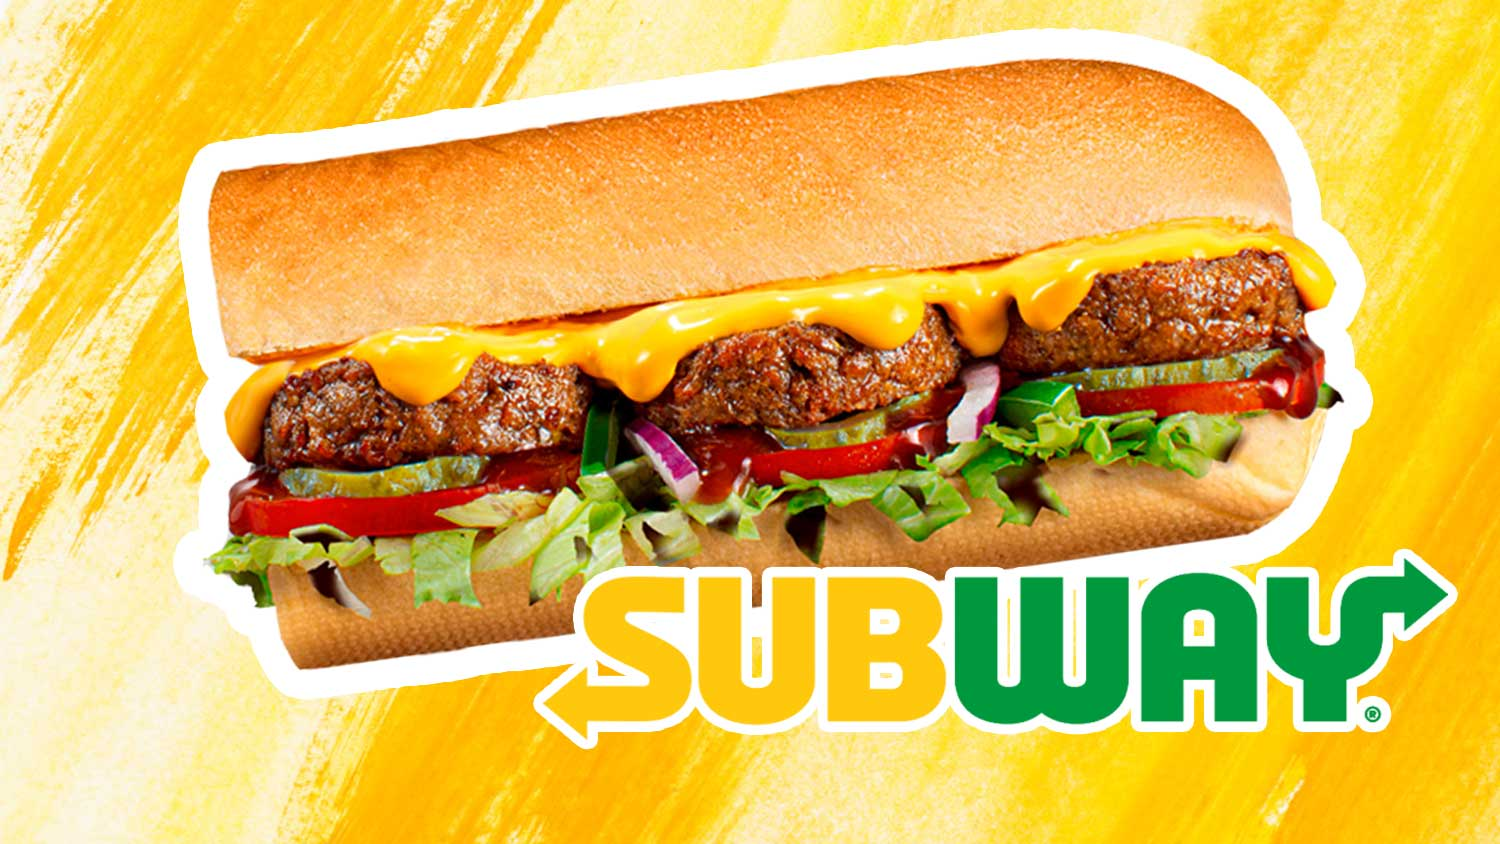 Subway Just Launched a Vegan Sandwich With Dairy-Free Cheese